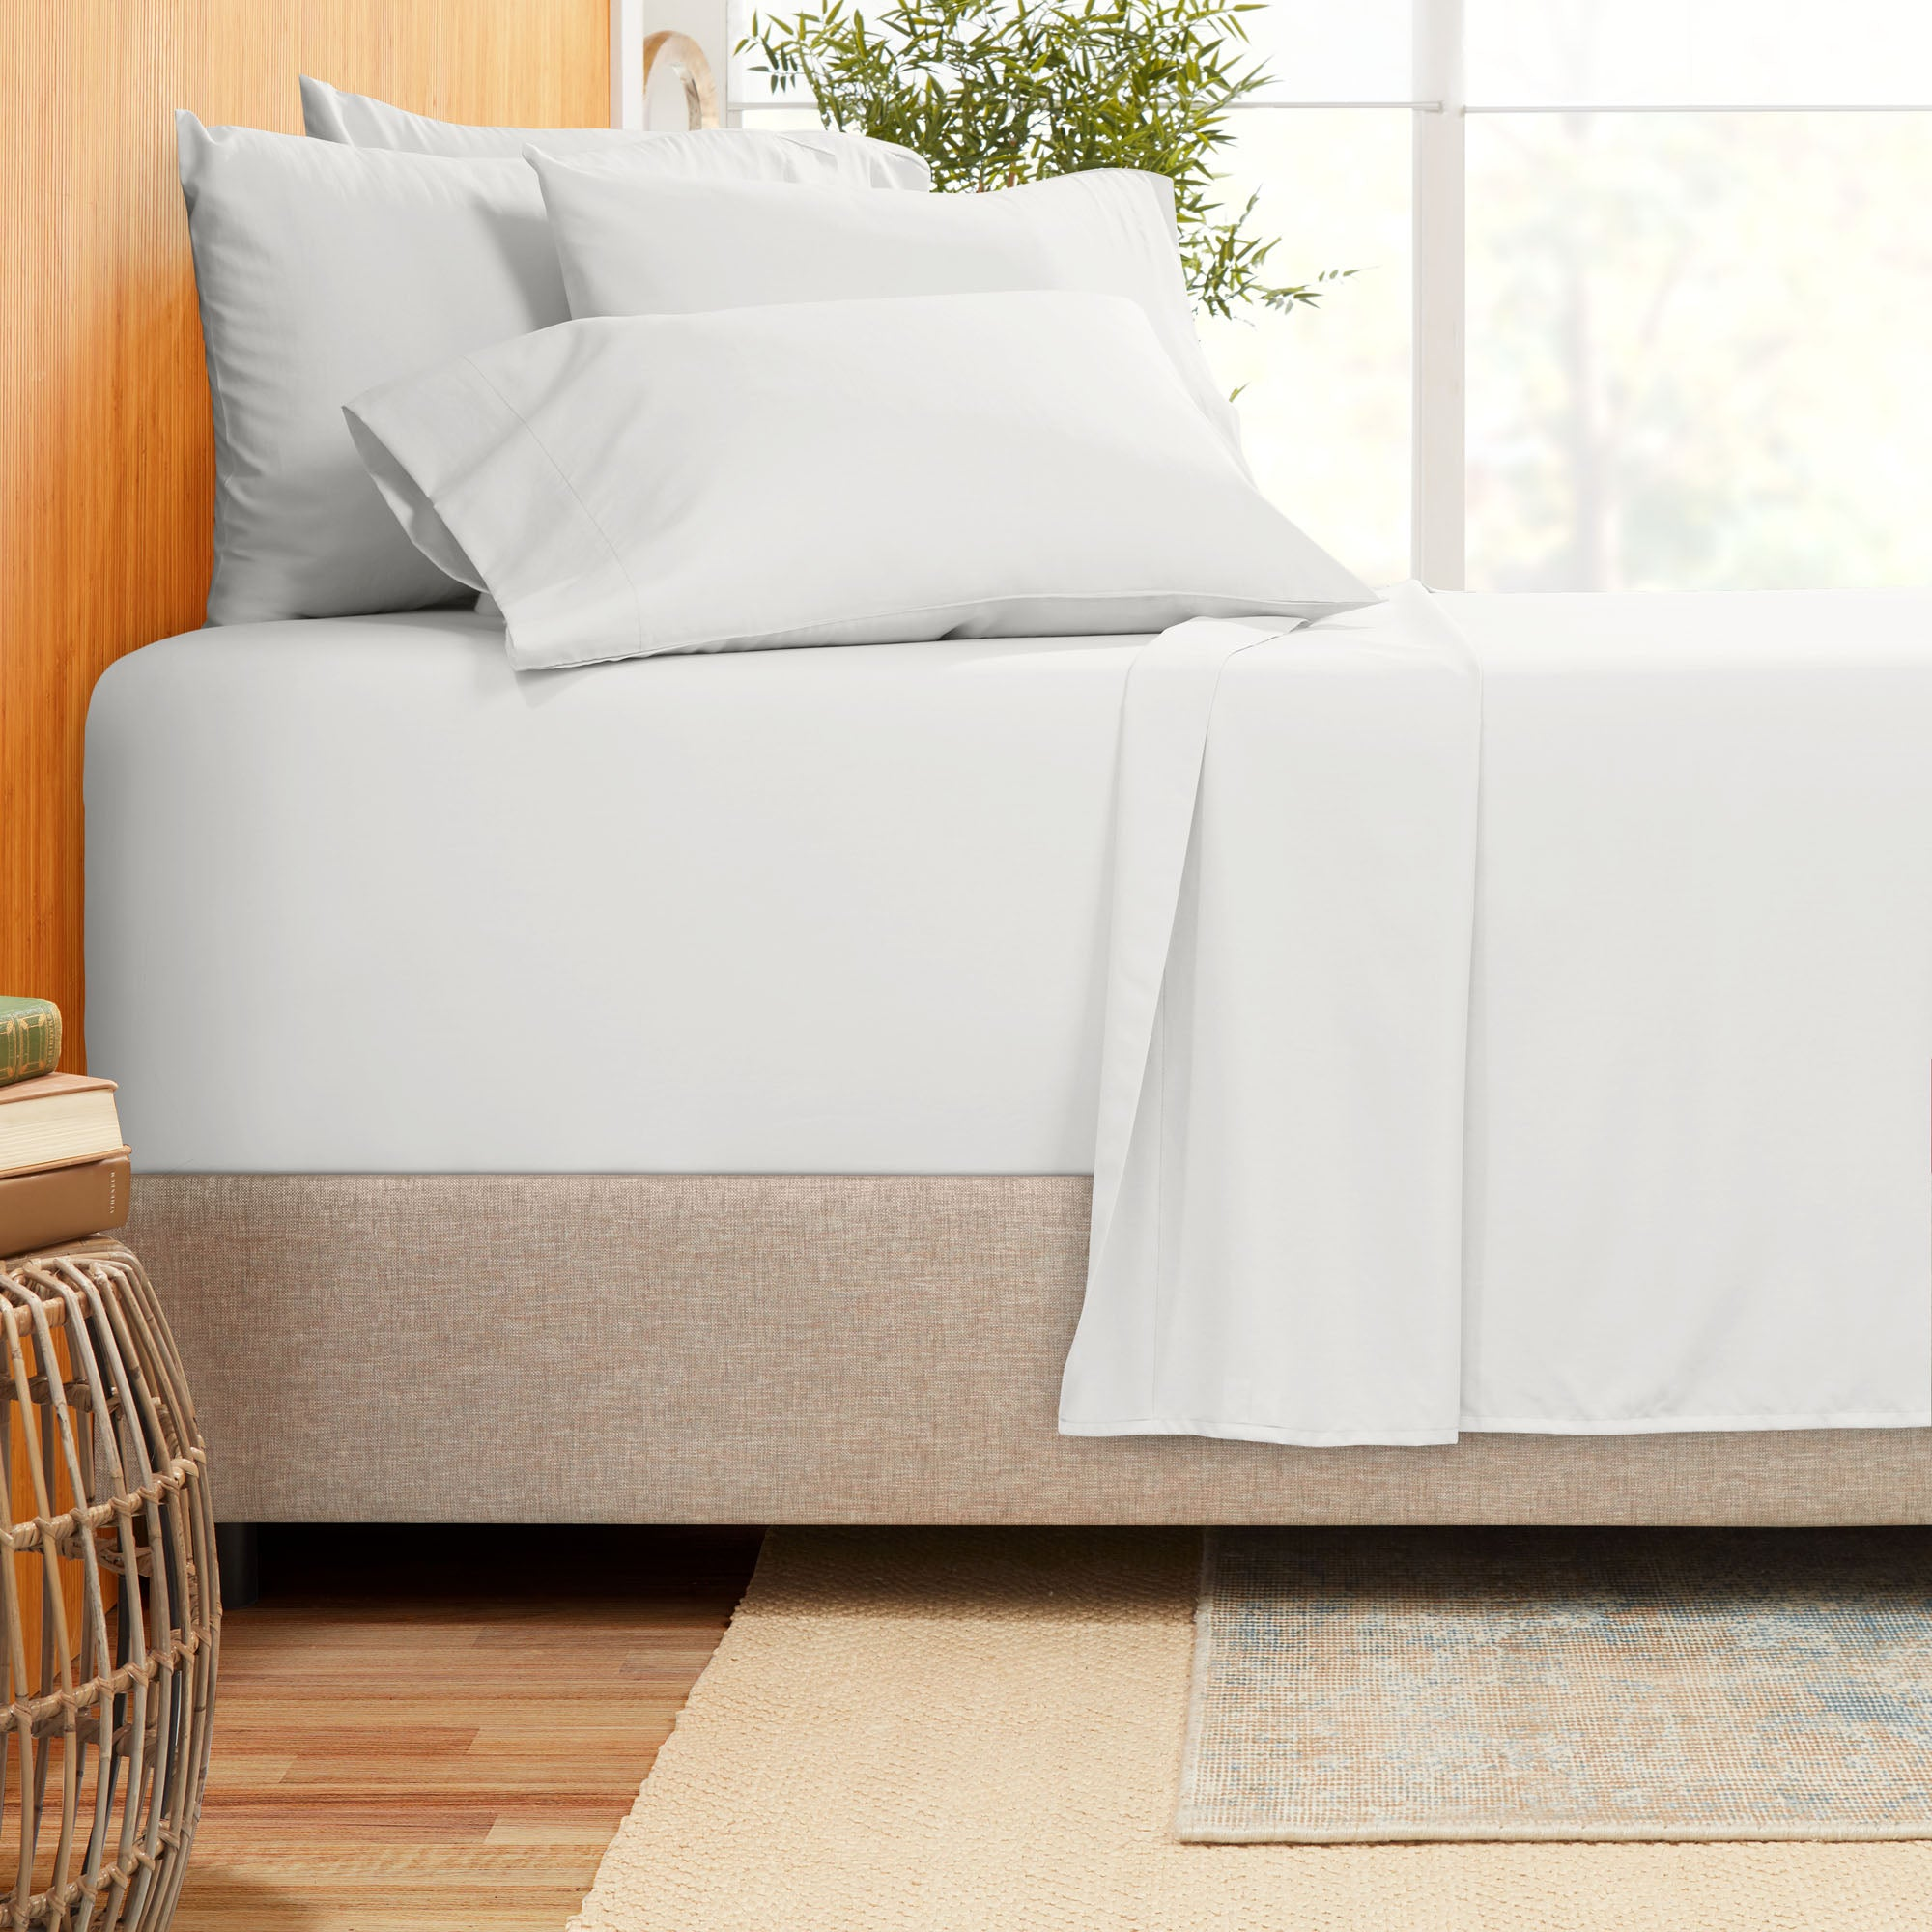 "Bamboo Blend 6 Piece King Size Sheets - 18""-21"" King Size Sheets With Extra Deep Pockets - Soft Microfiber King Size Sheets Set - Fitted Extra Deep Pocket King Size Sheets"